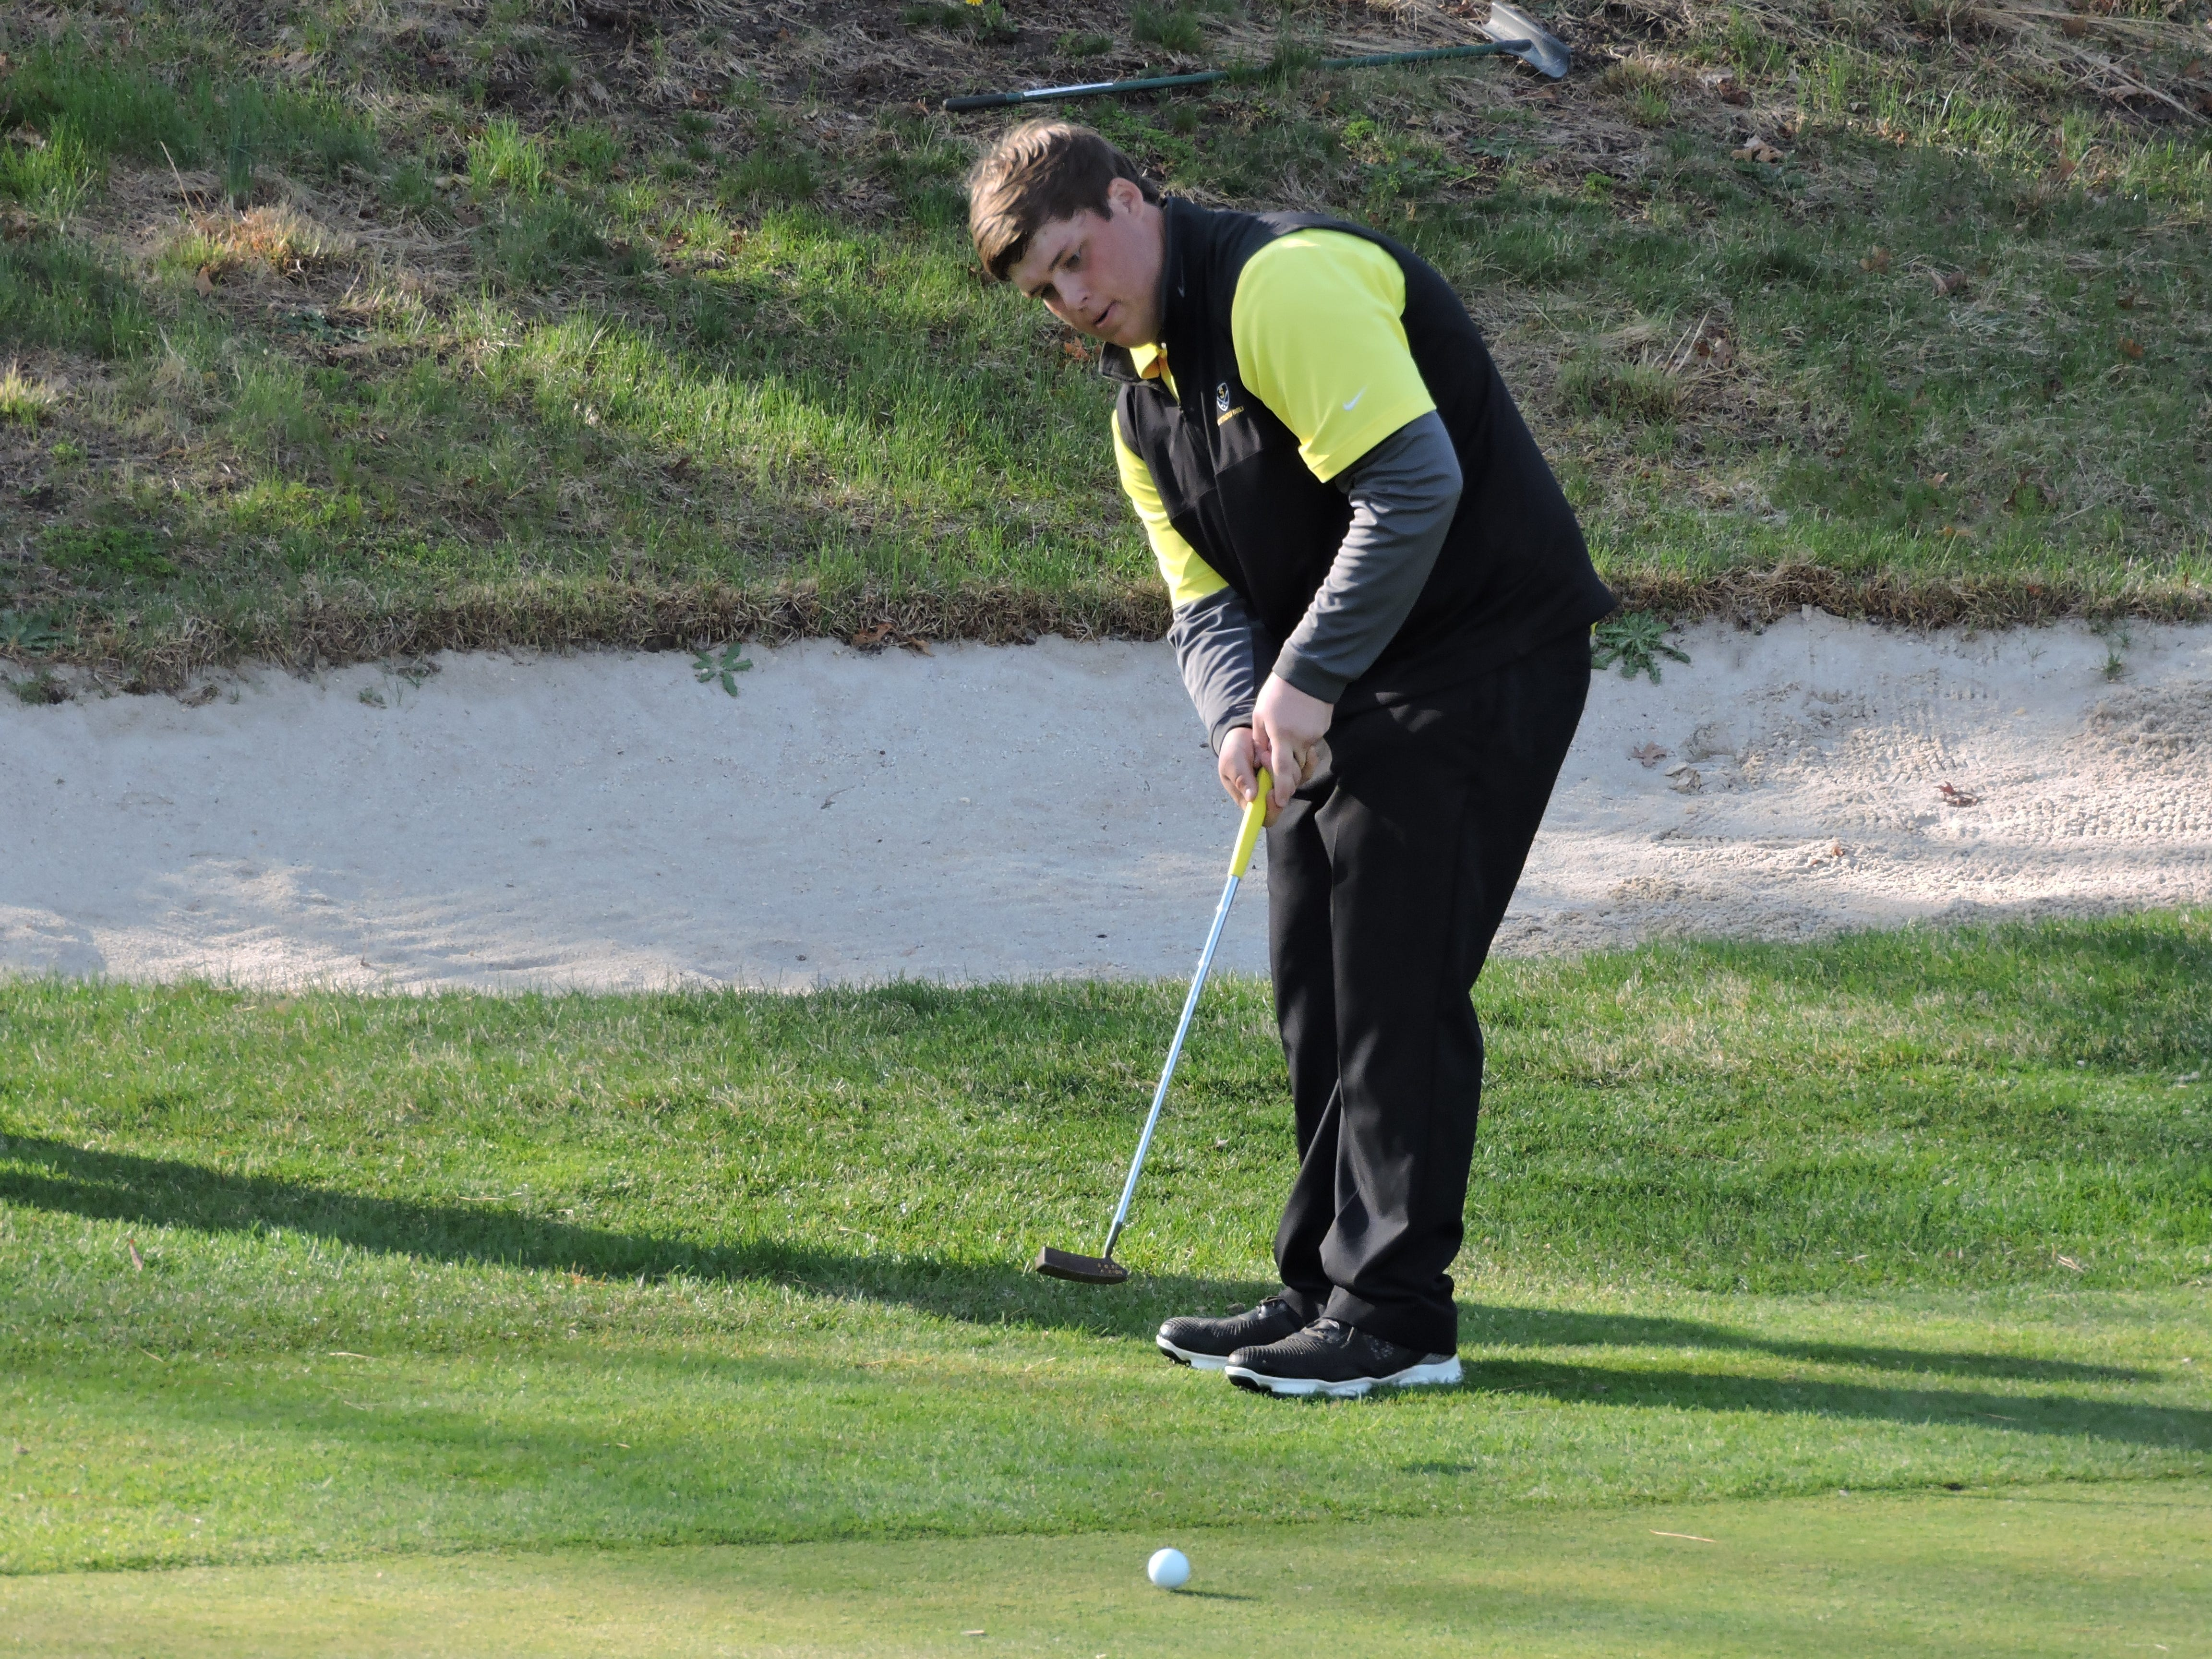 Southern's Jackson Fiel captured his thrid straight Ocean County Tournaemnt title on Monday at Sea Oaks Golf Club in Little Egg Harbor, while leading the Rams to the team title.